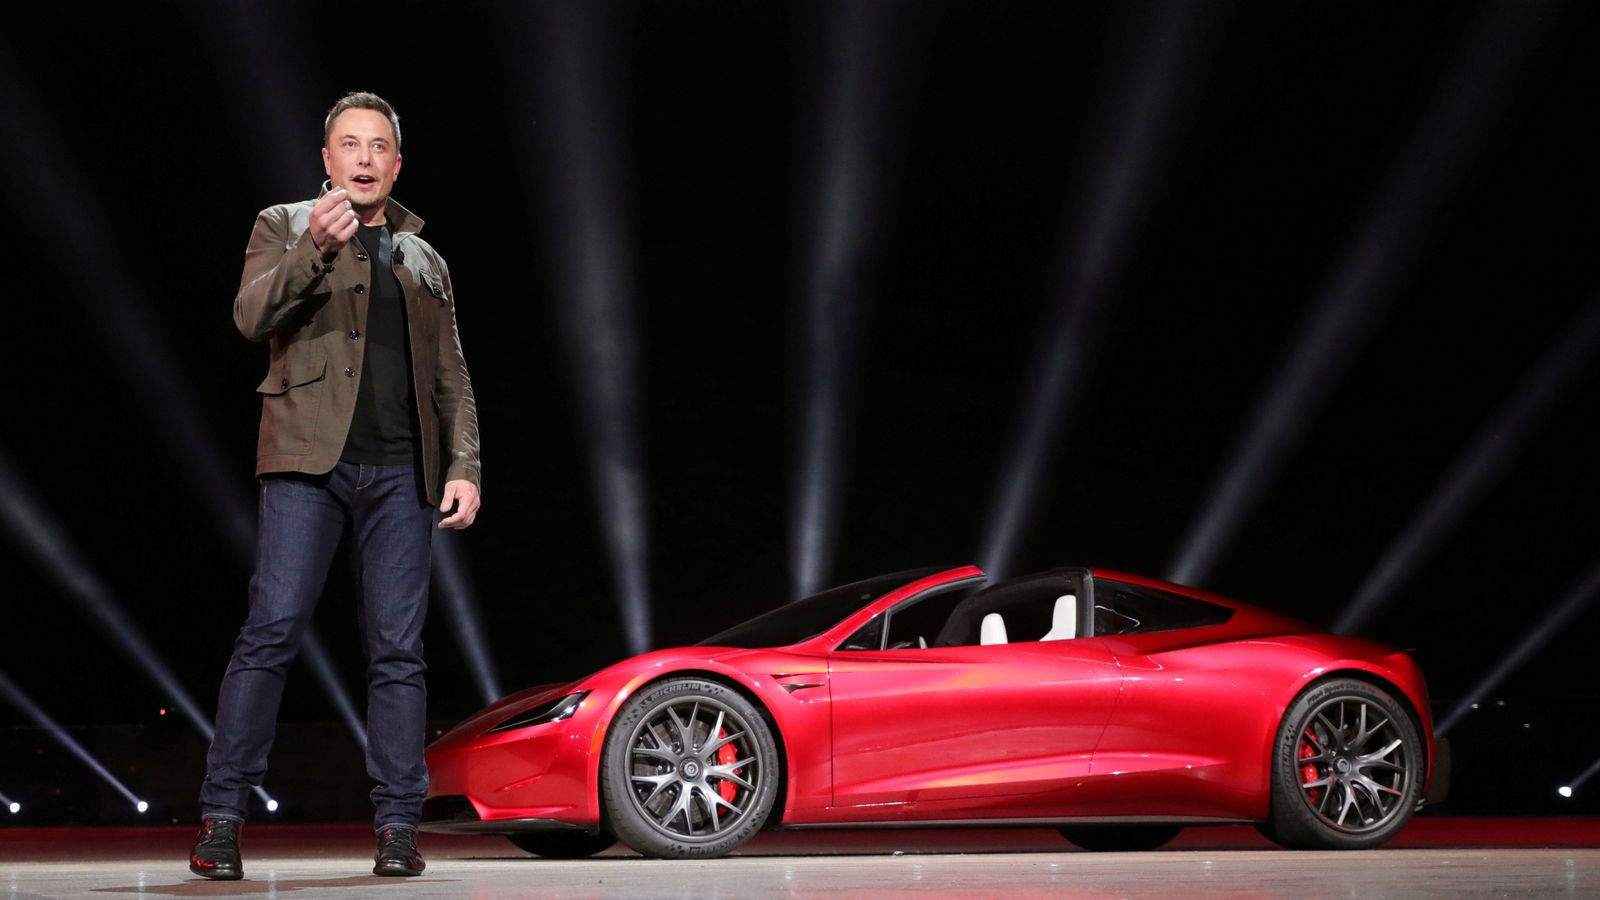 SpaceX boss Elon Musk to launch his electric car into orbit around Mars